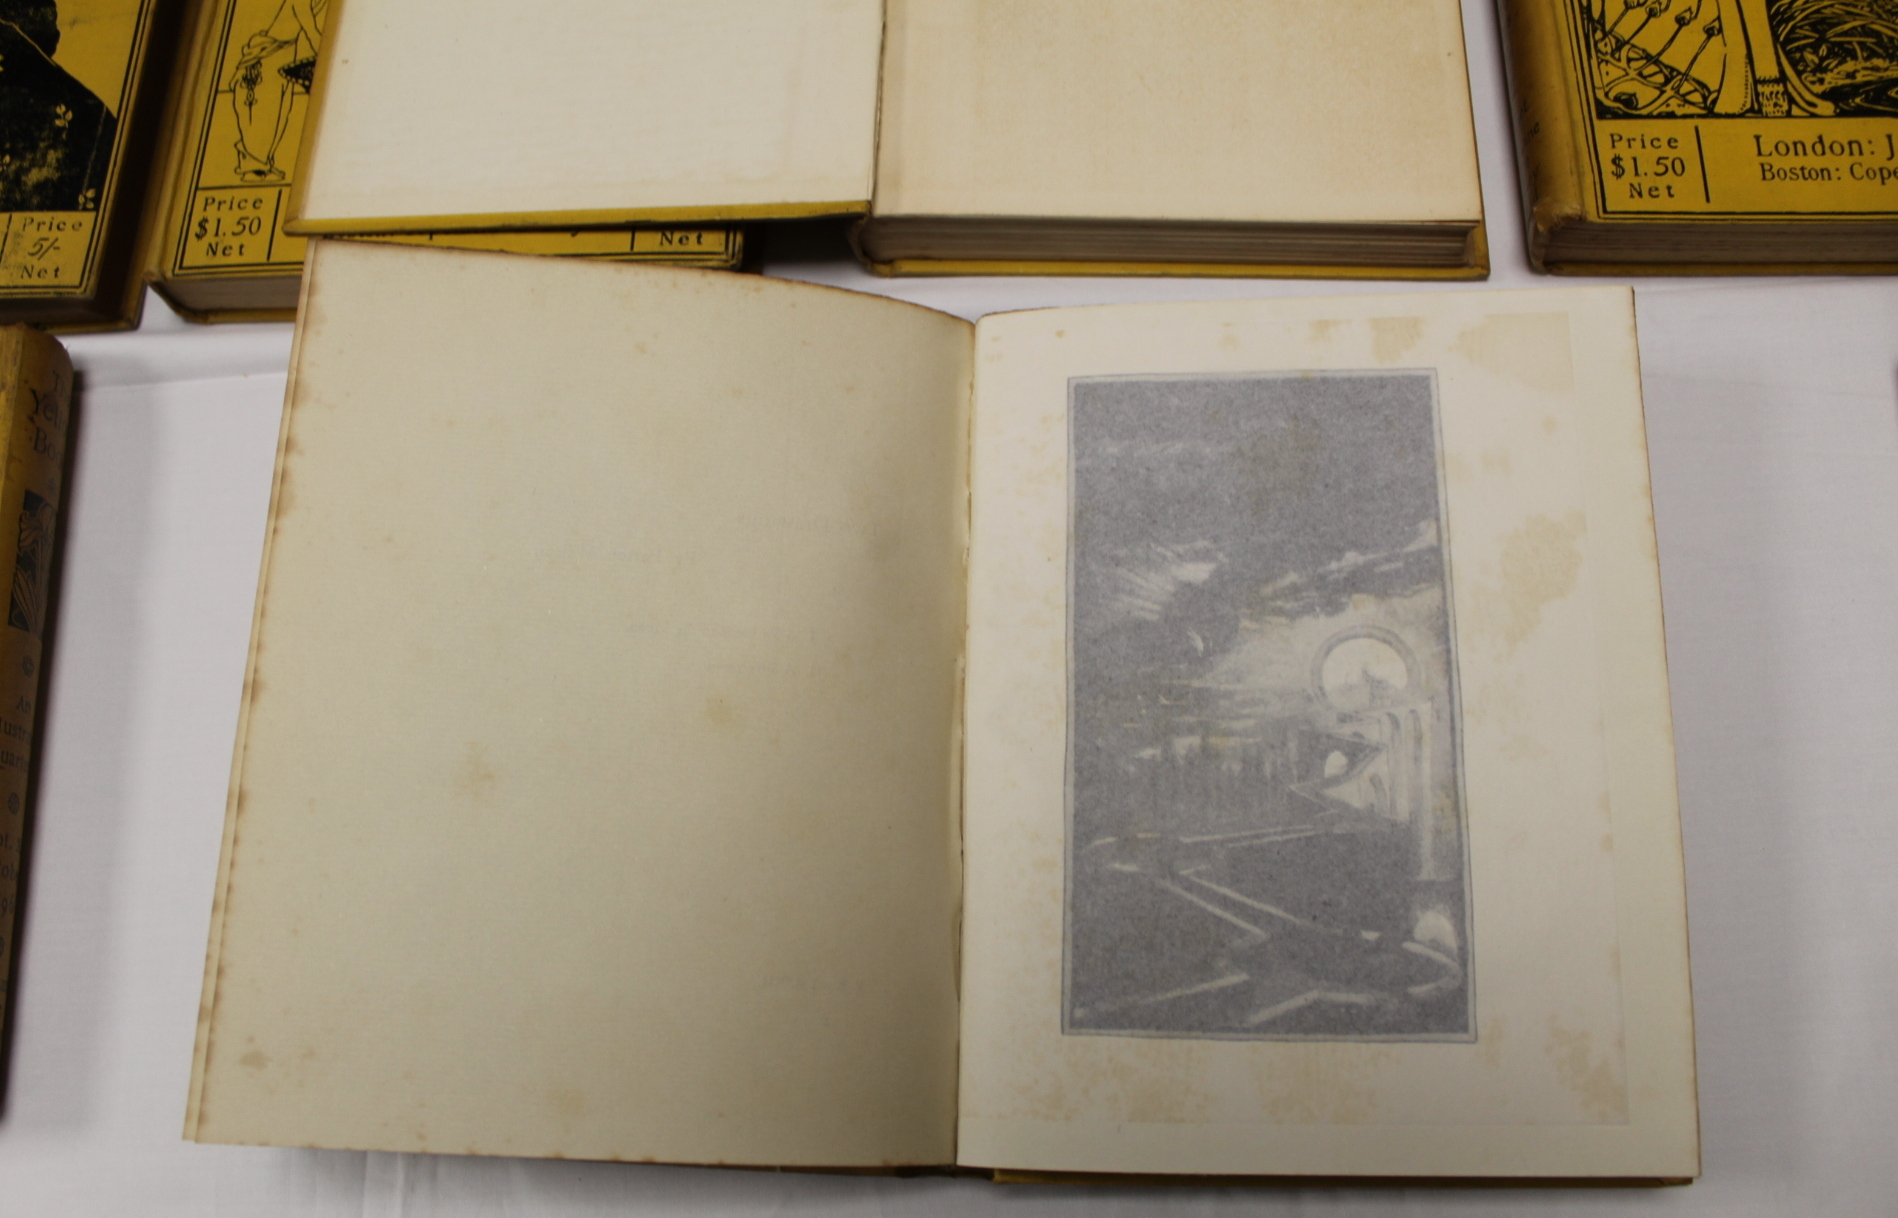 THE YELLOW BOOK.An Illustrated Quarterly. A set of 13 vols., many fine illus. Small quarto. - Image 24 of 45